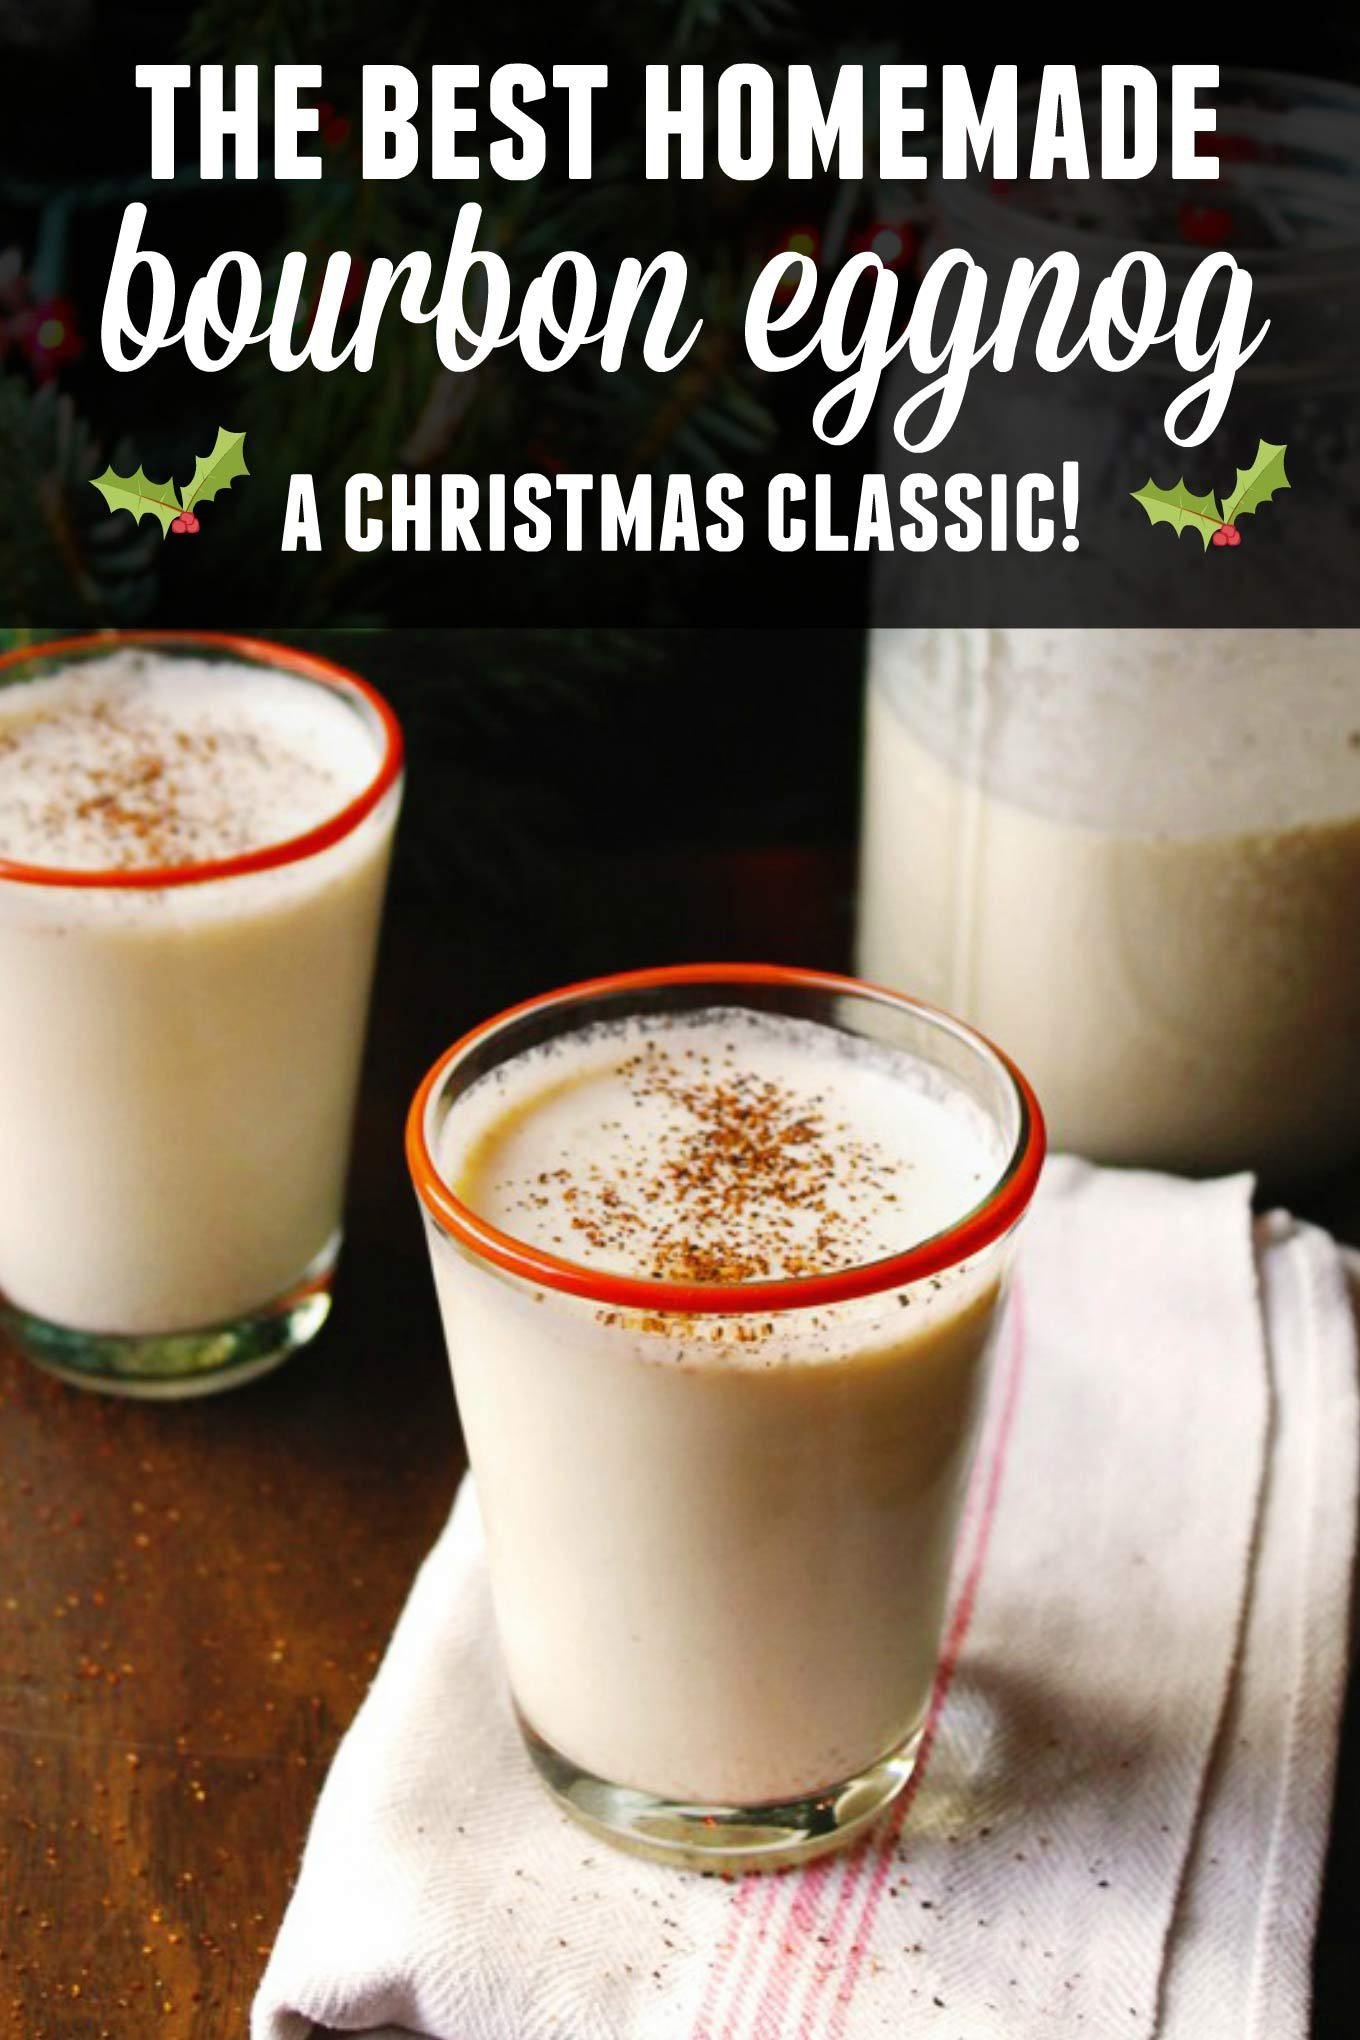 Homemade Eggnog, Best Eggnog